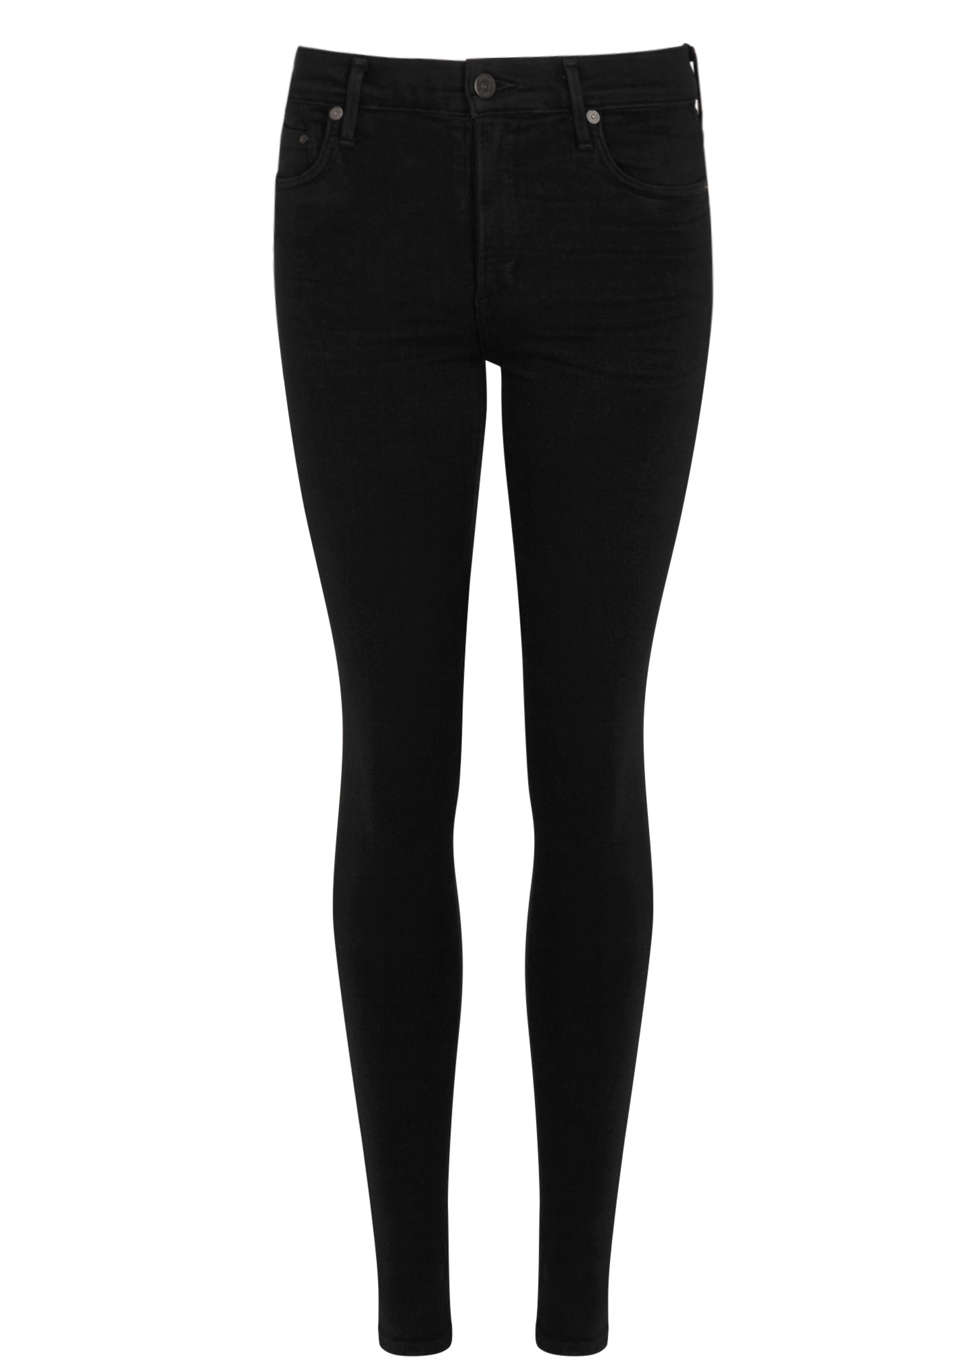 Rocket black skinny jeans - Citizens of Humanity